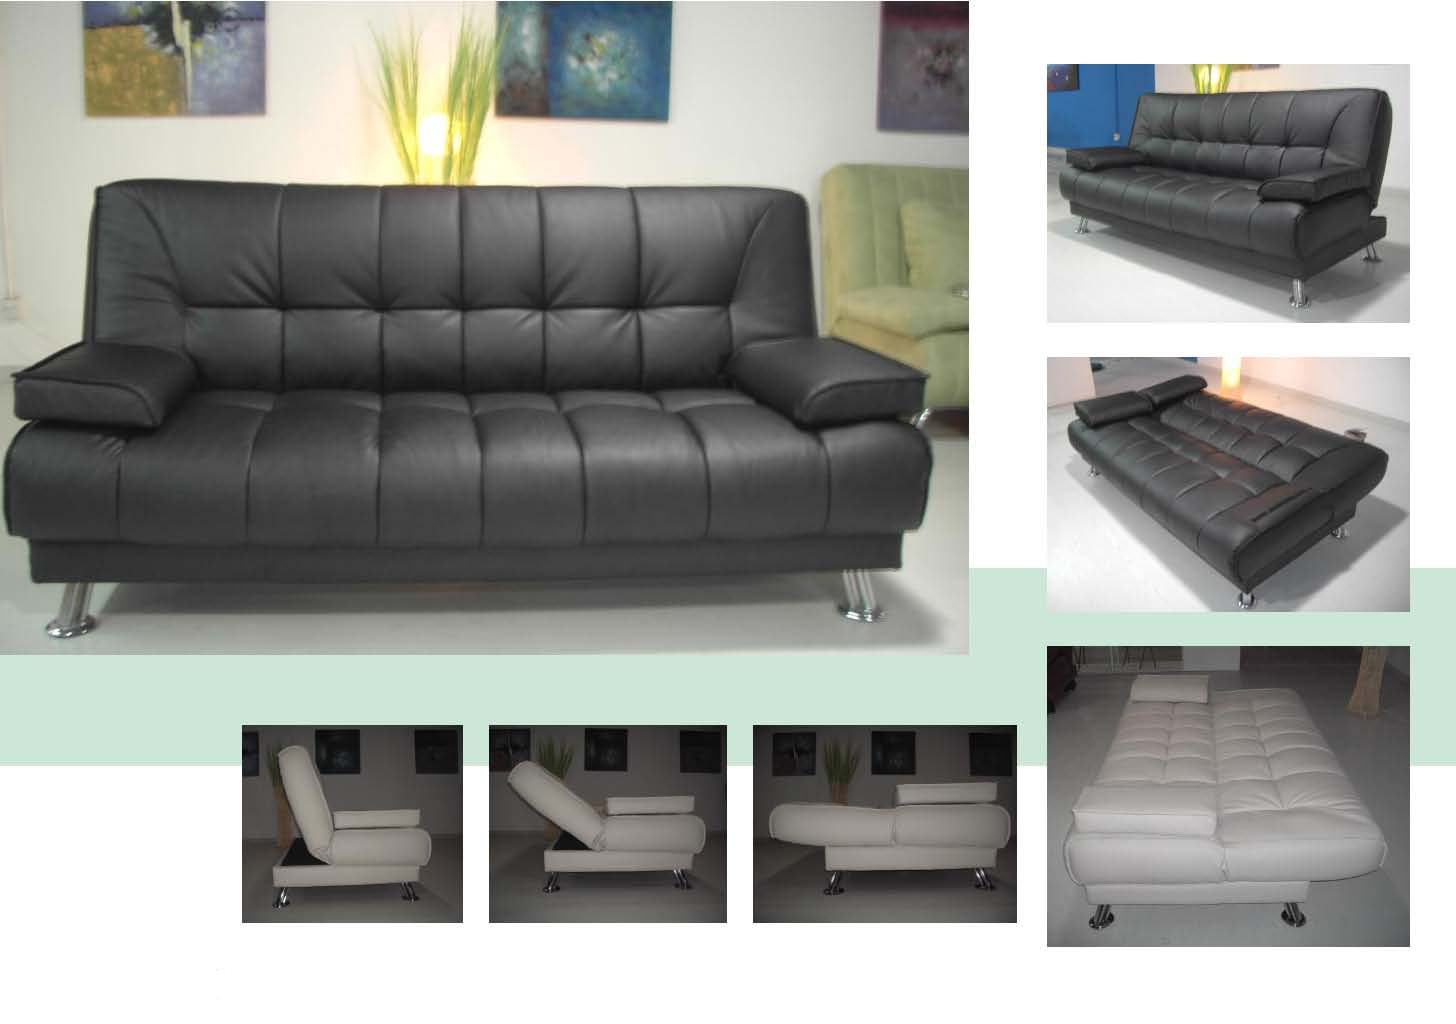 2pcs Modern Leatherette Futon Sofa Bed Set Item 3510 Ebay